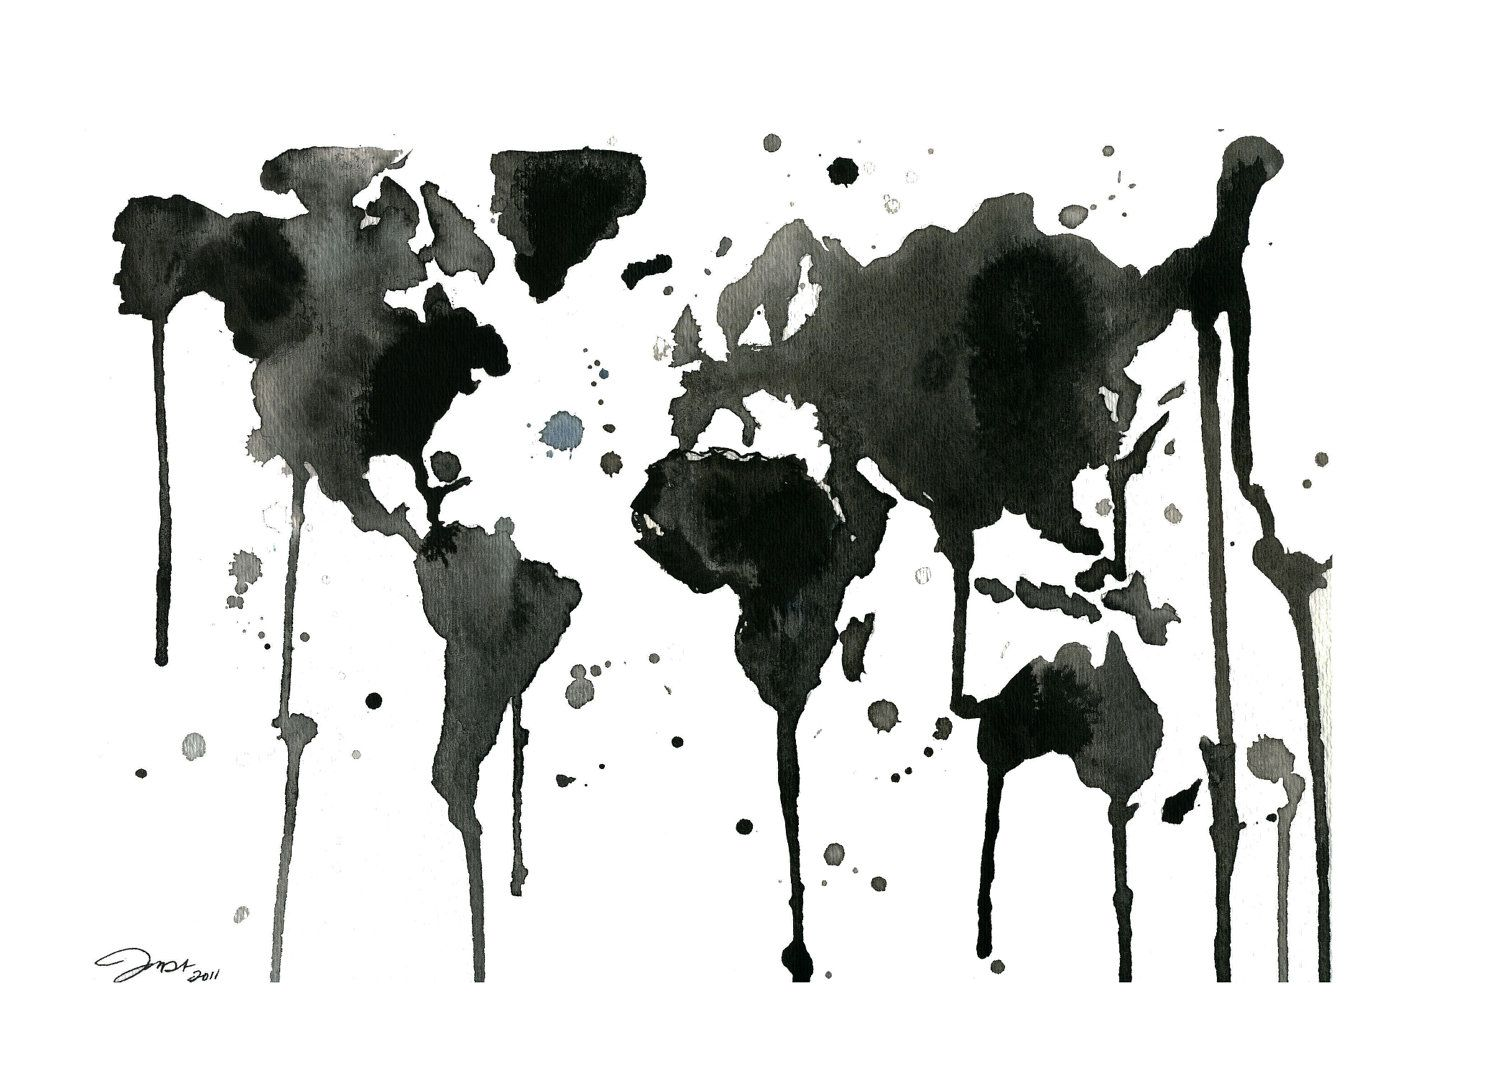 World Map Black And White Tumblr. It s a Black and White World Watercolor Map by JessicaIllustration black white world  Randomness Pinterest map